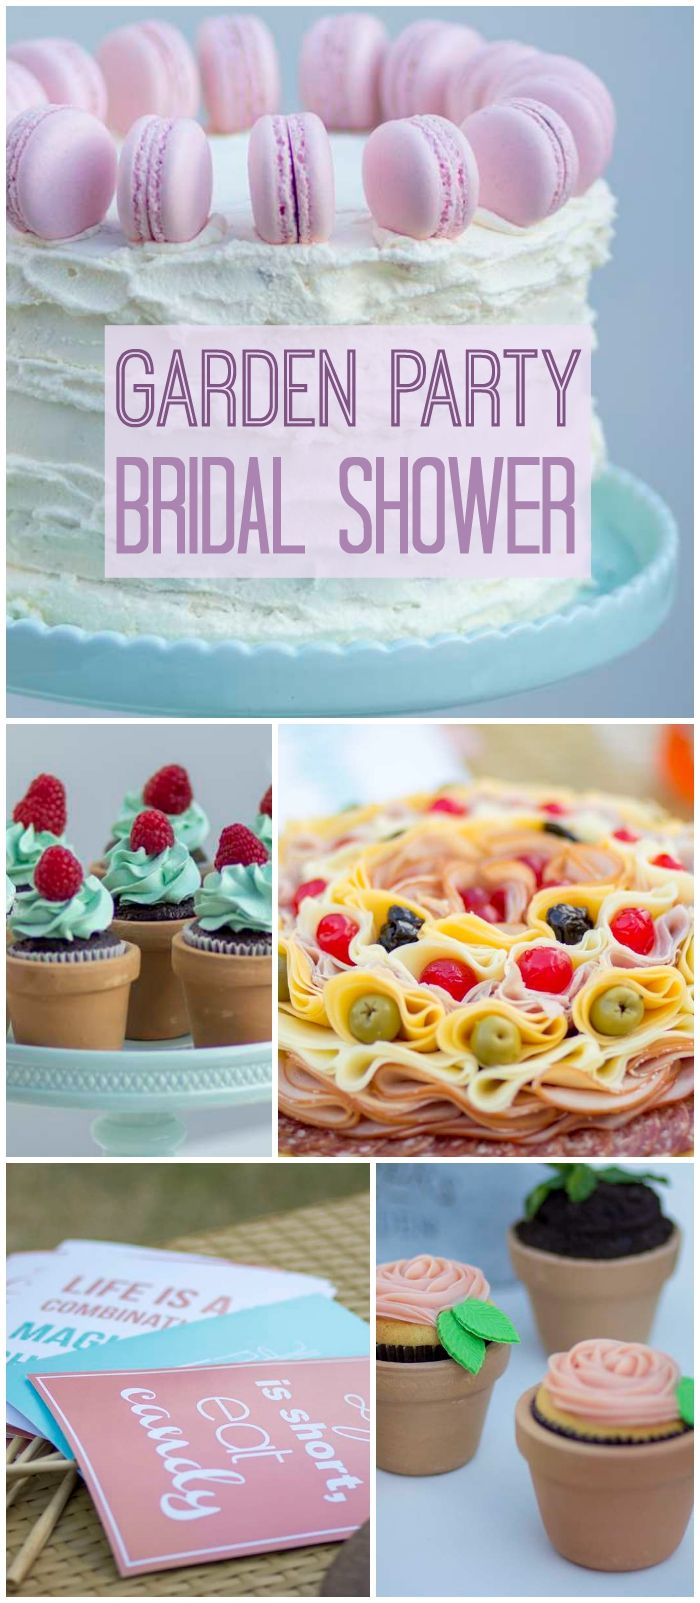 Garden party bridal shower quotgarden party bridal shower for Garden party bridal shower